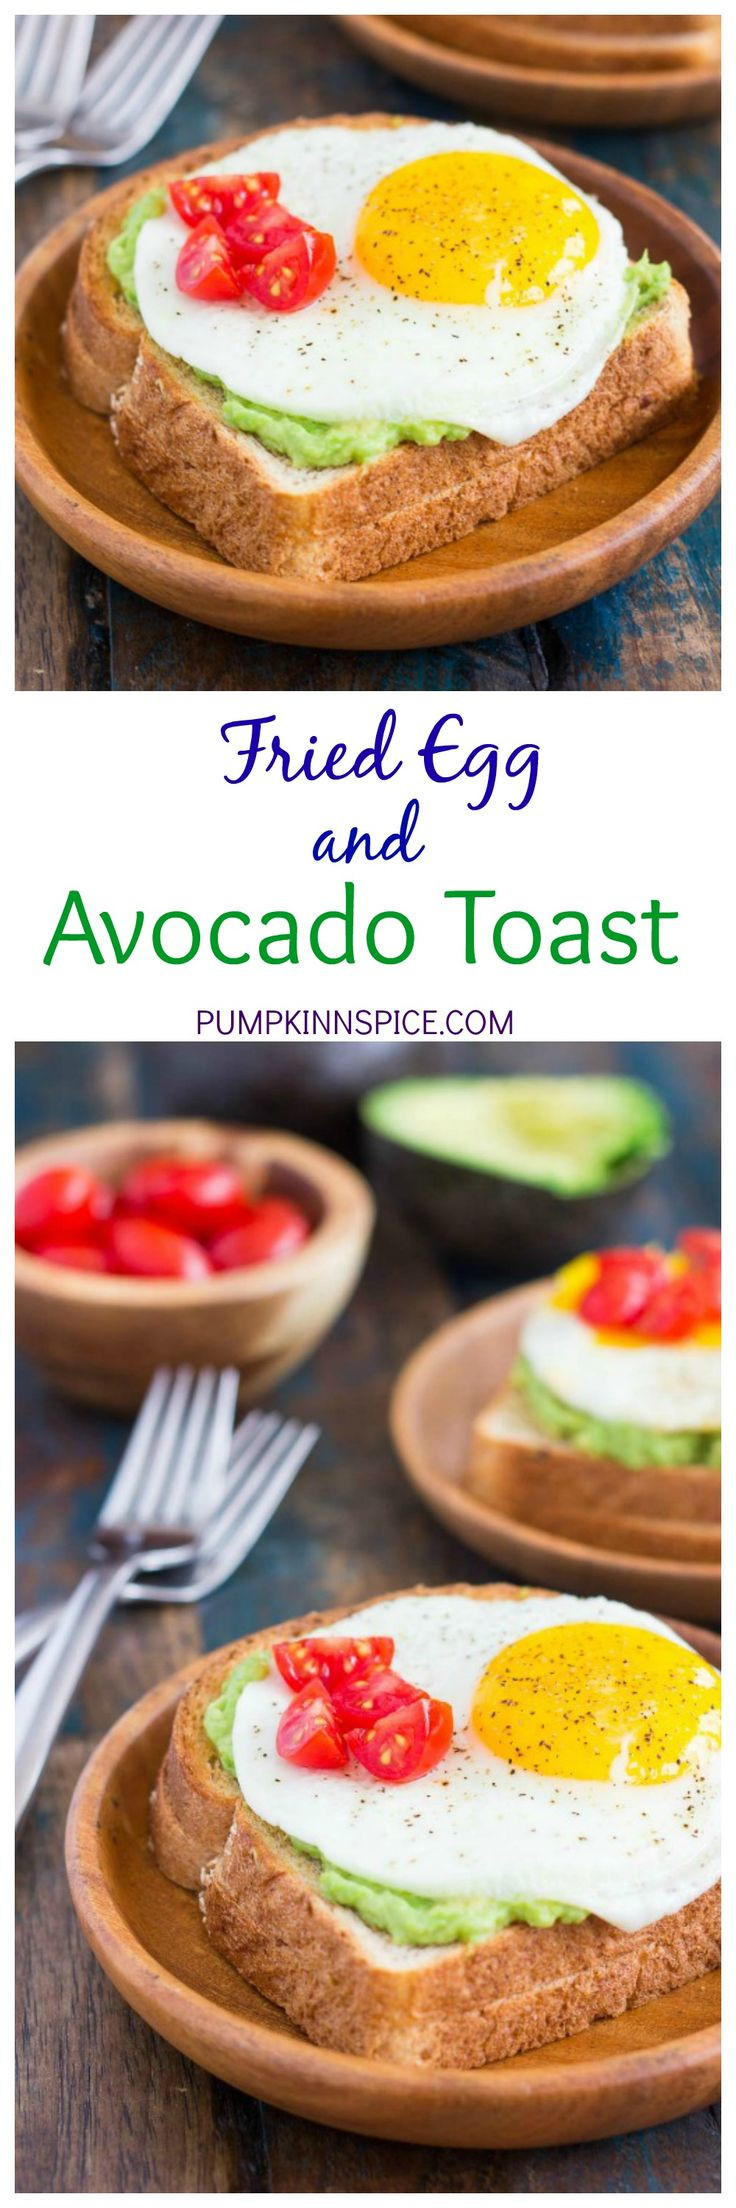 ... bread is toasted and then topped with mashed avocado, a fried egg, and